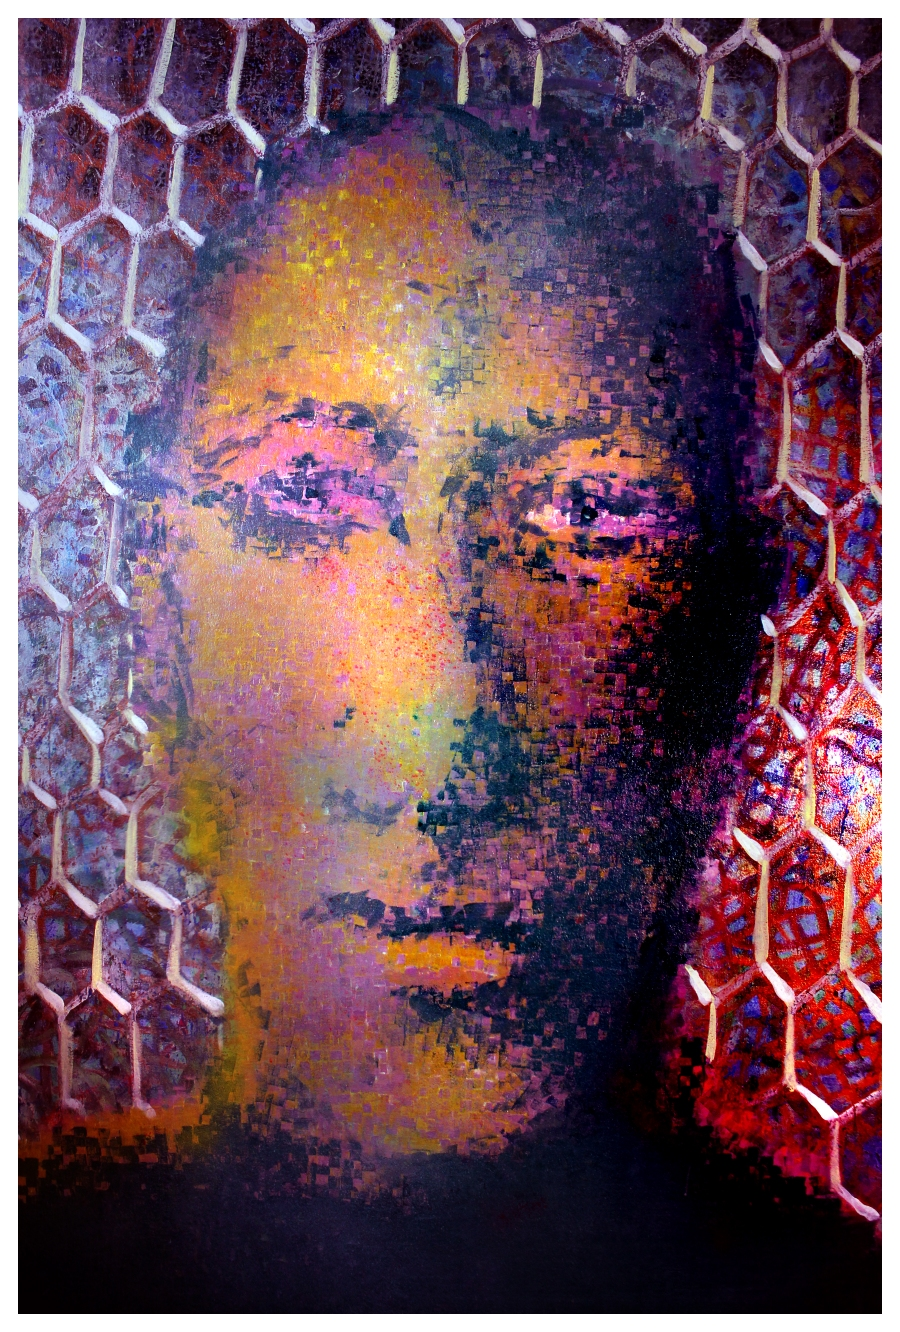 Bee Man Rudolf Steiner Acrylic and oil on panel, 2012